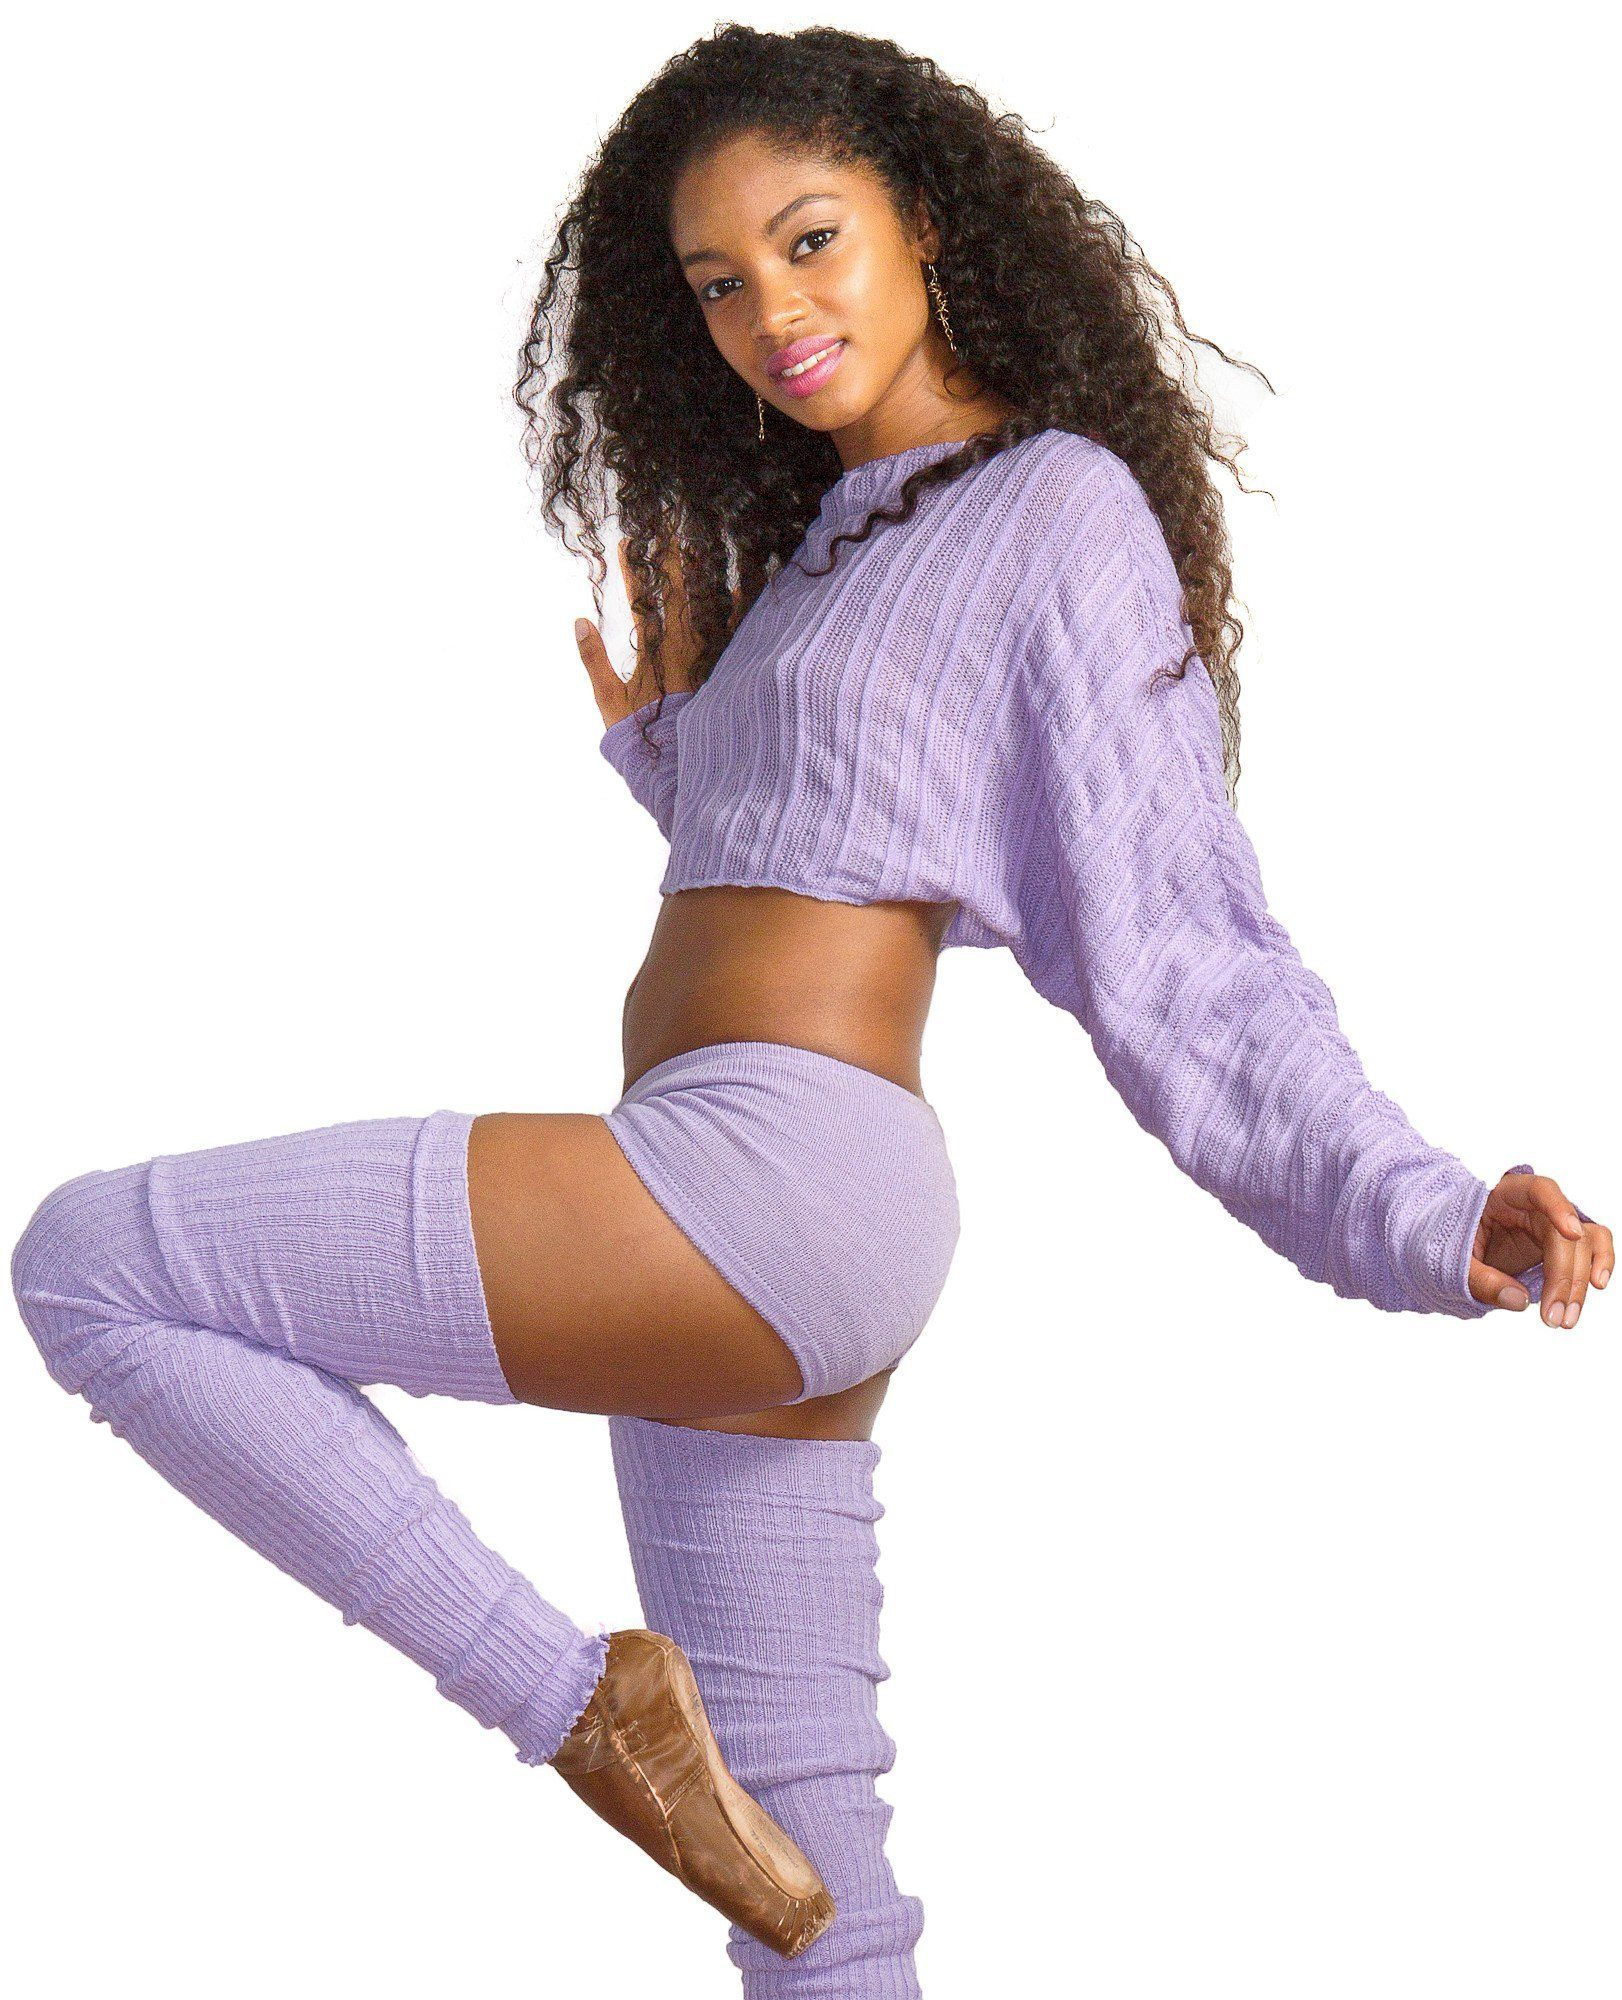 Ballet Yoga Dancewear 3 Pc Set Leg Warmers Sweater Top & Boy Shorts @KDdanceNewYork #MadeInUSA - 9